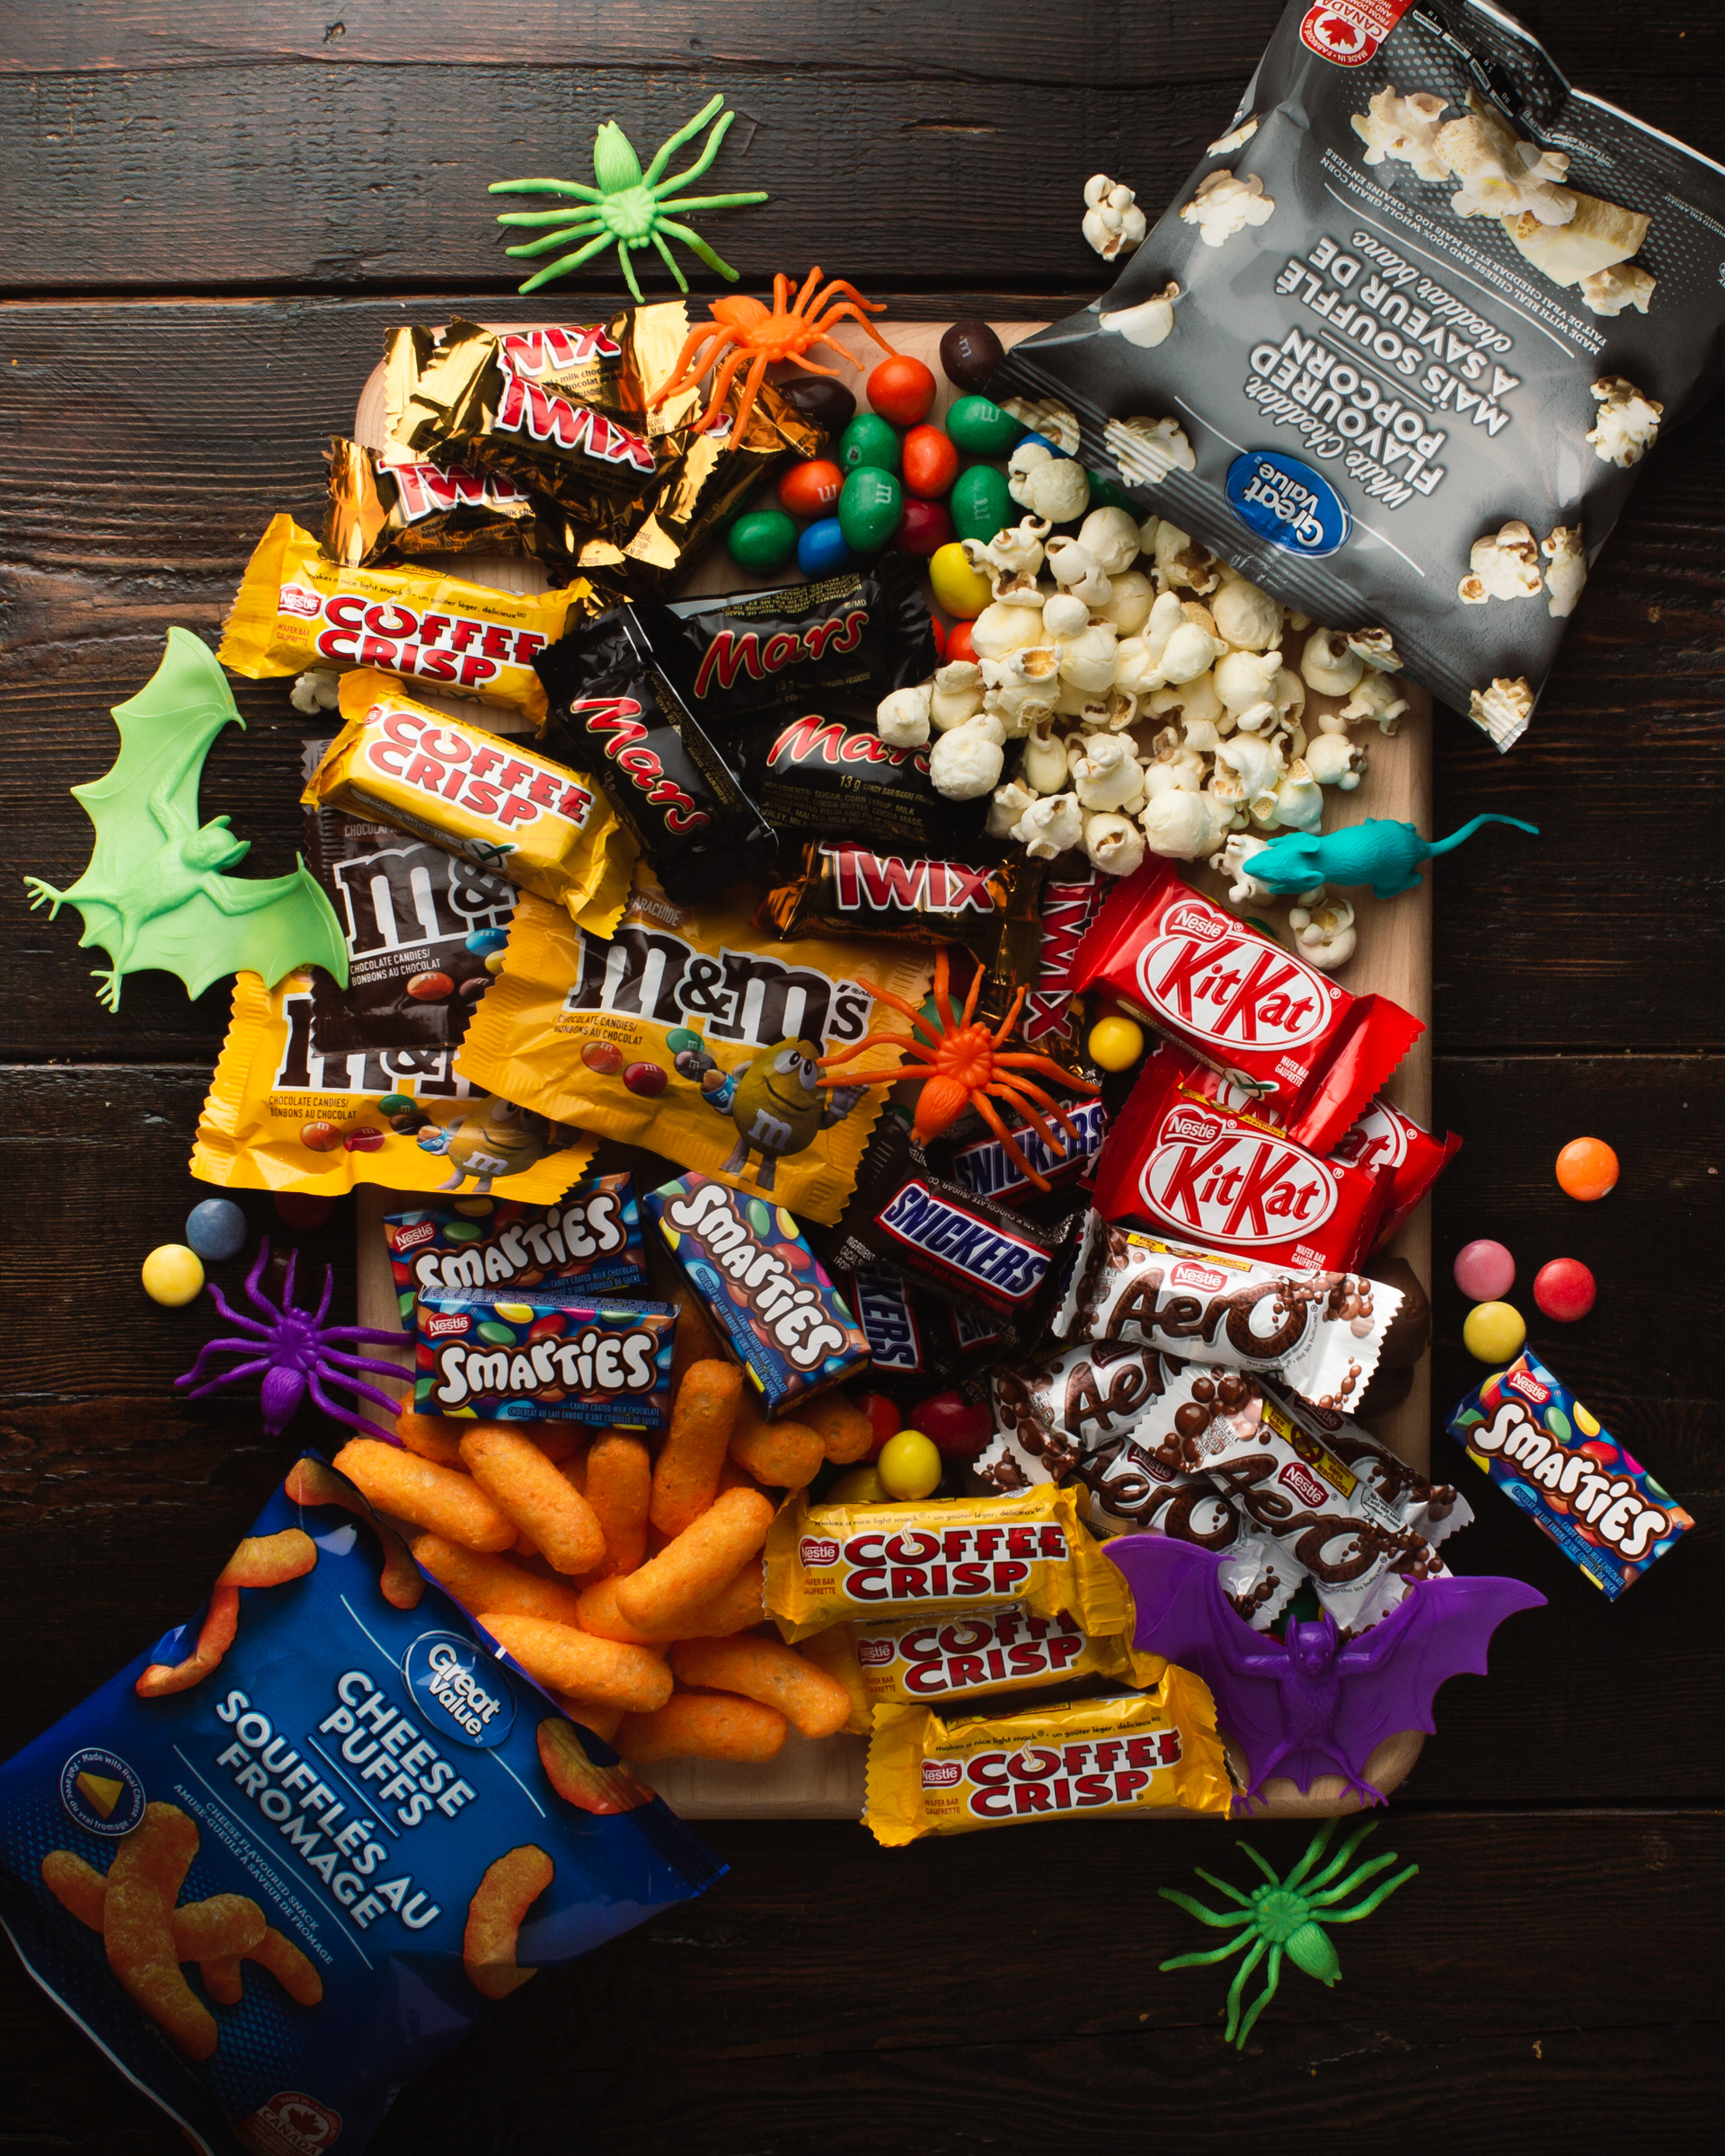 The only thing scarier than Halloween, is an empty candy